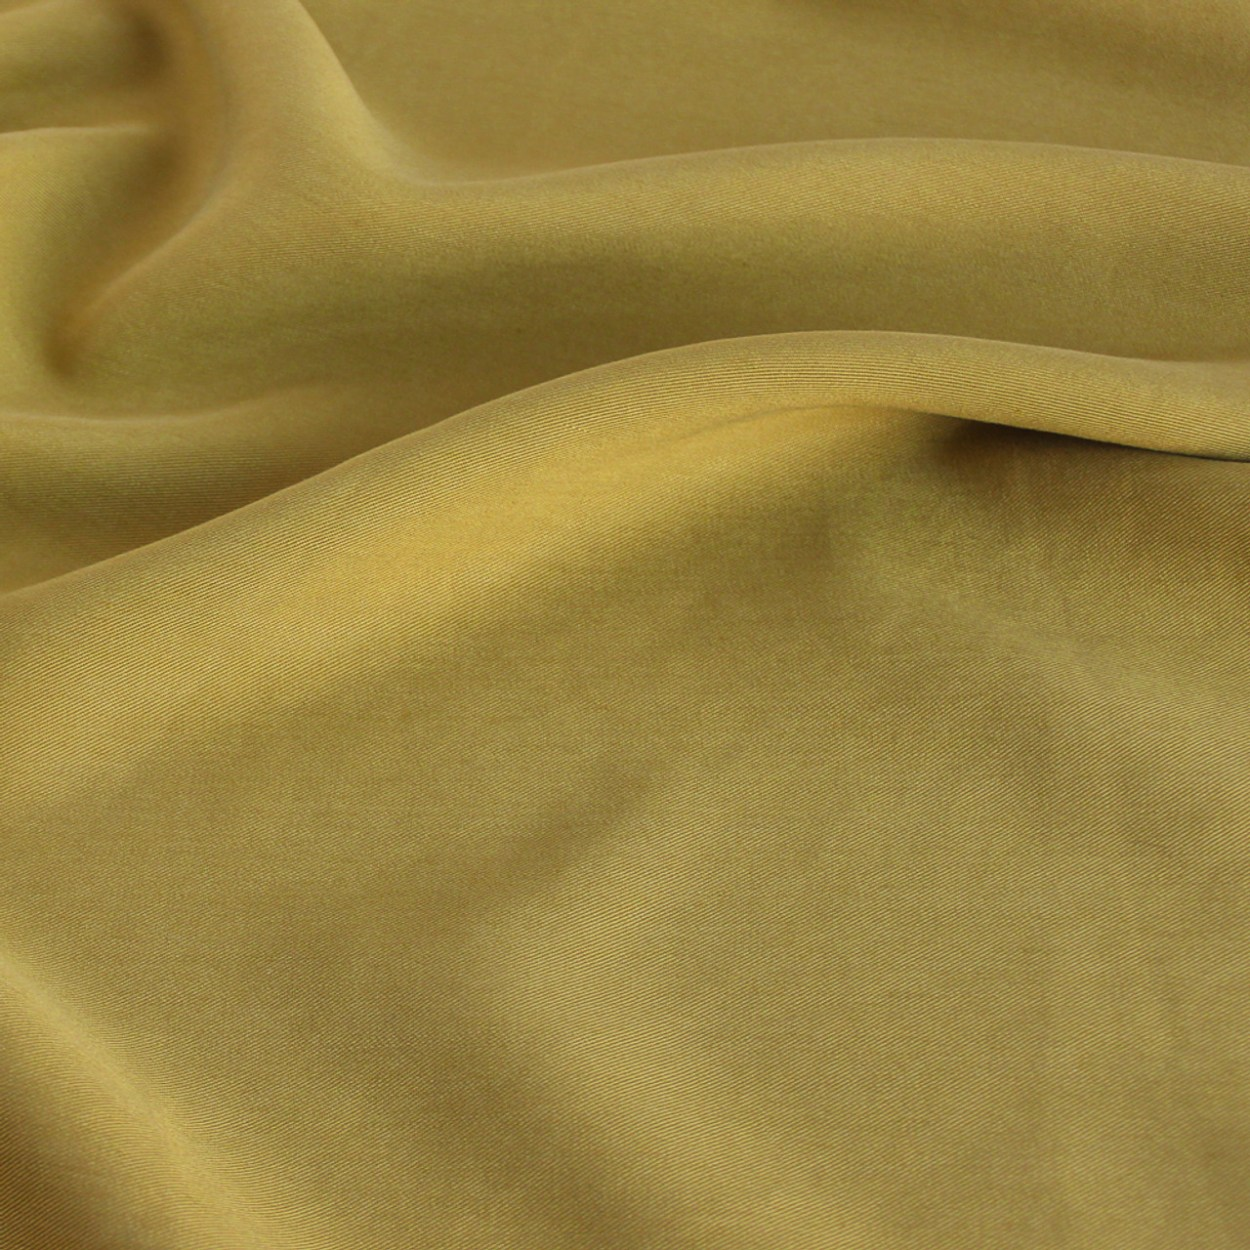 A product photo of chartreuse tencel twill fabric, slightly rumpled to showcase the drape.